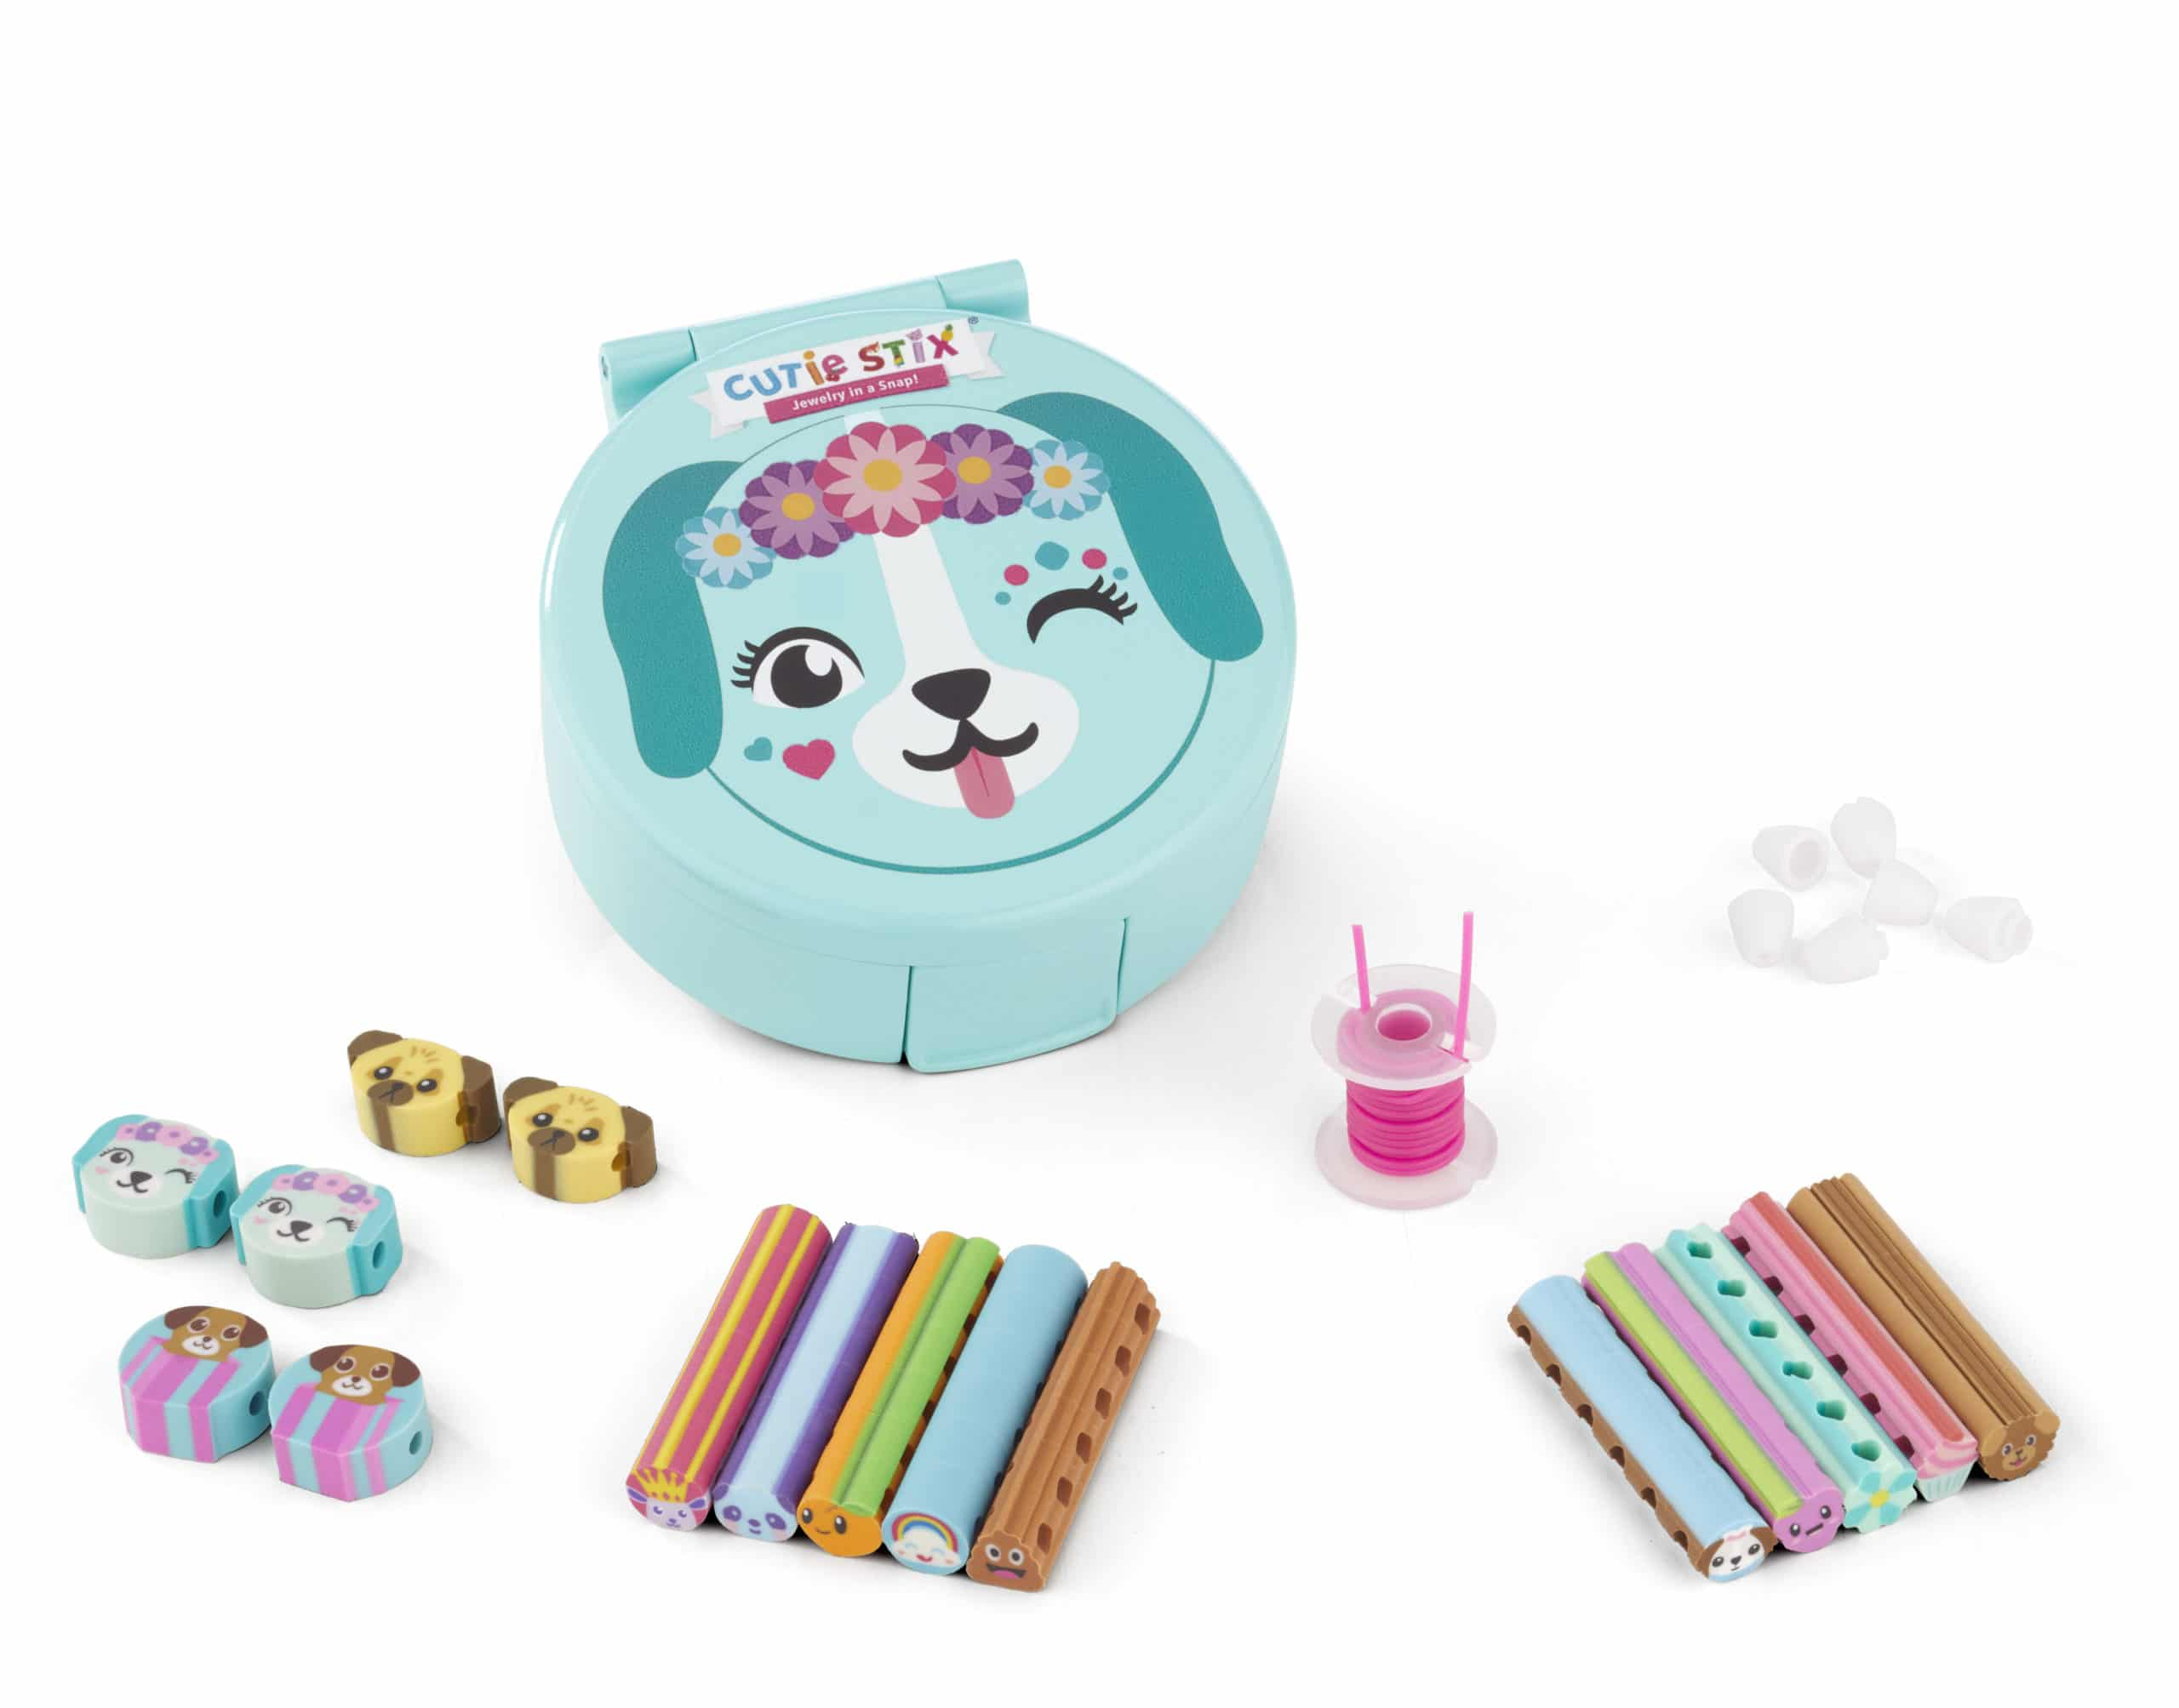 Take your Cutie Stix on-the-go with the all-new Cutie Compact Jewelry Kit! These adorable animal-themed compacts come complete with everything you need to make 4 Cutie Stix bracelets or 2 necklaces! Now you can bring your personalized Cutie Stix creations wherever you go! Available in 3 sets including Friends Furrever, Pinky Pal or Kitty Krew.